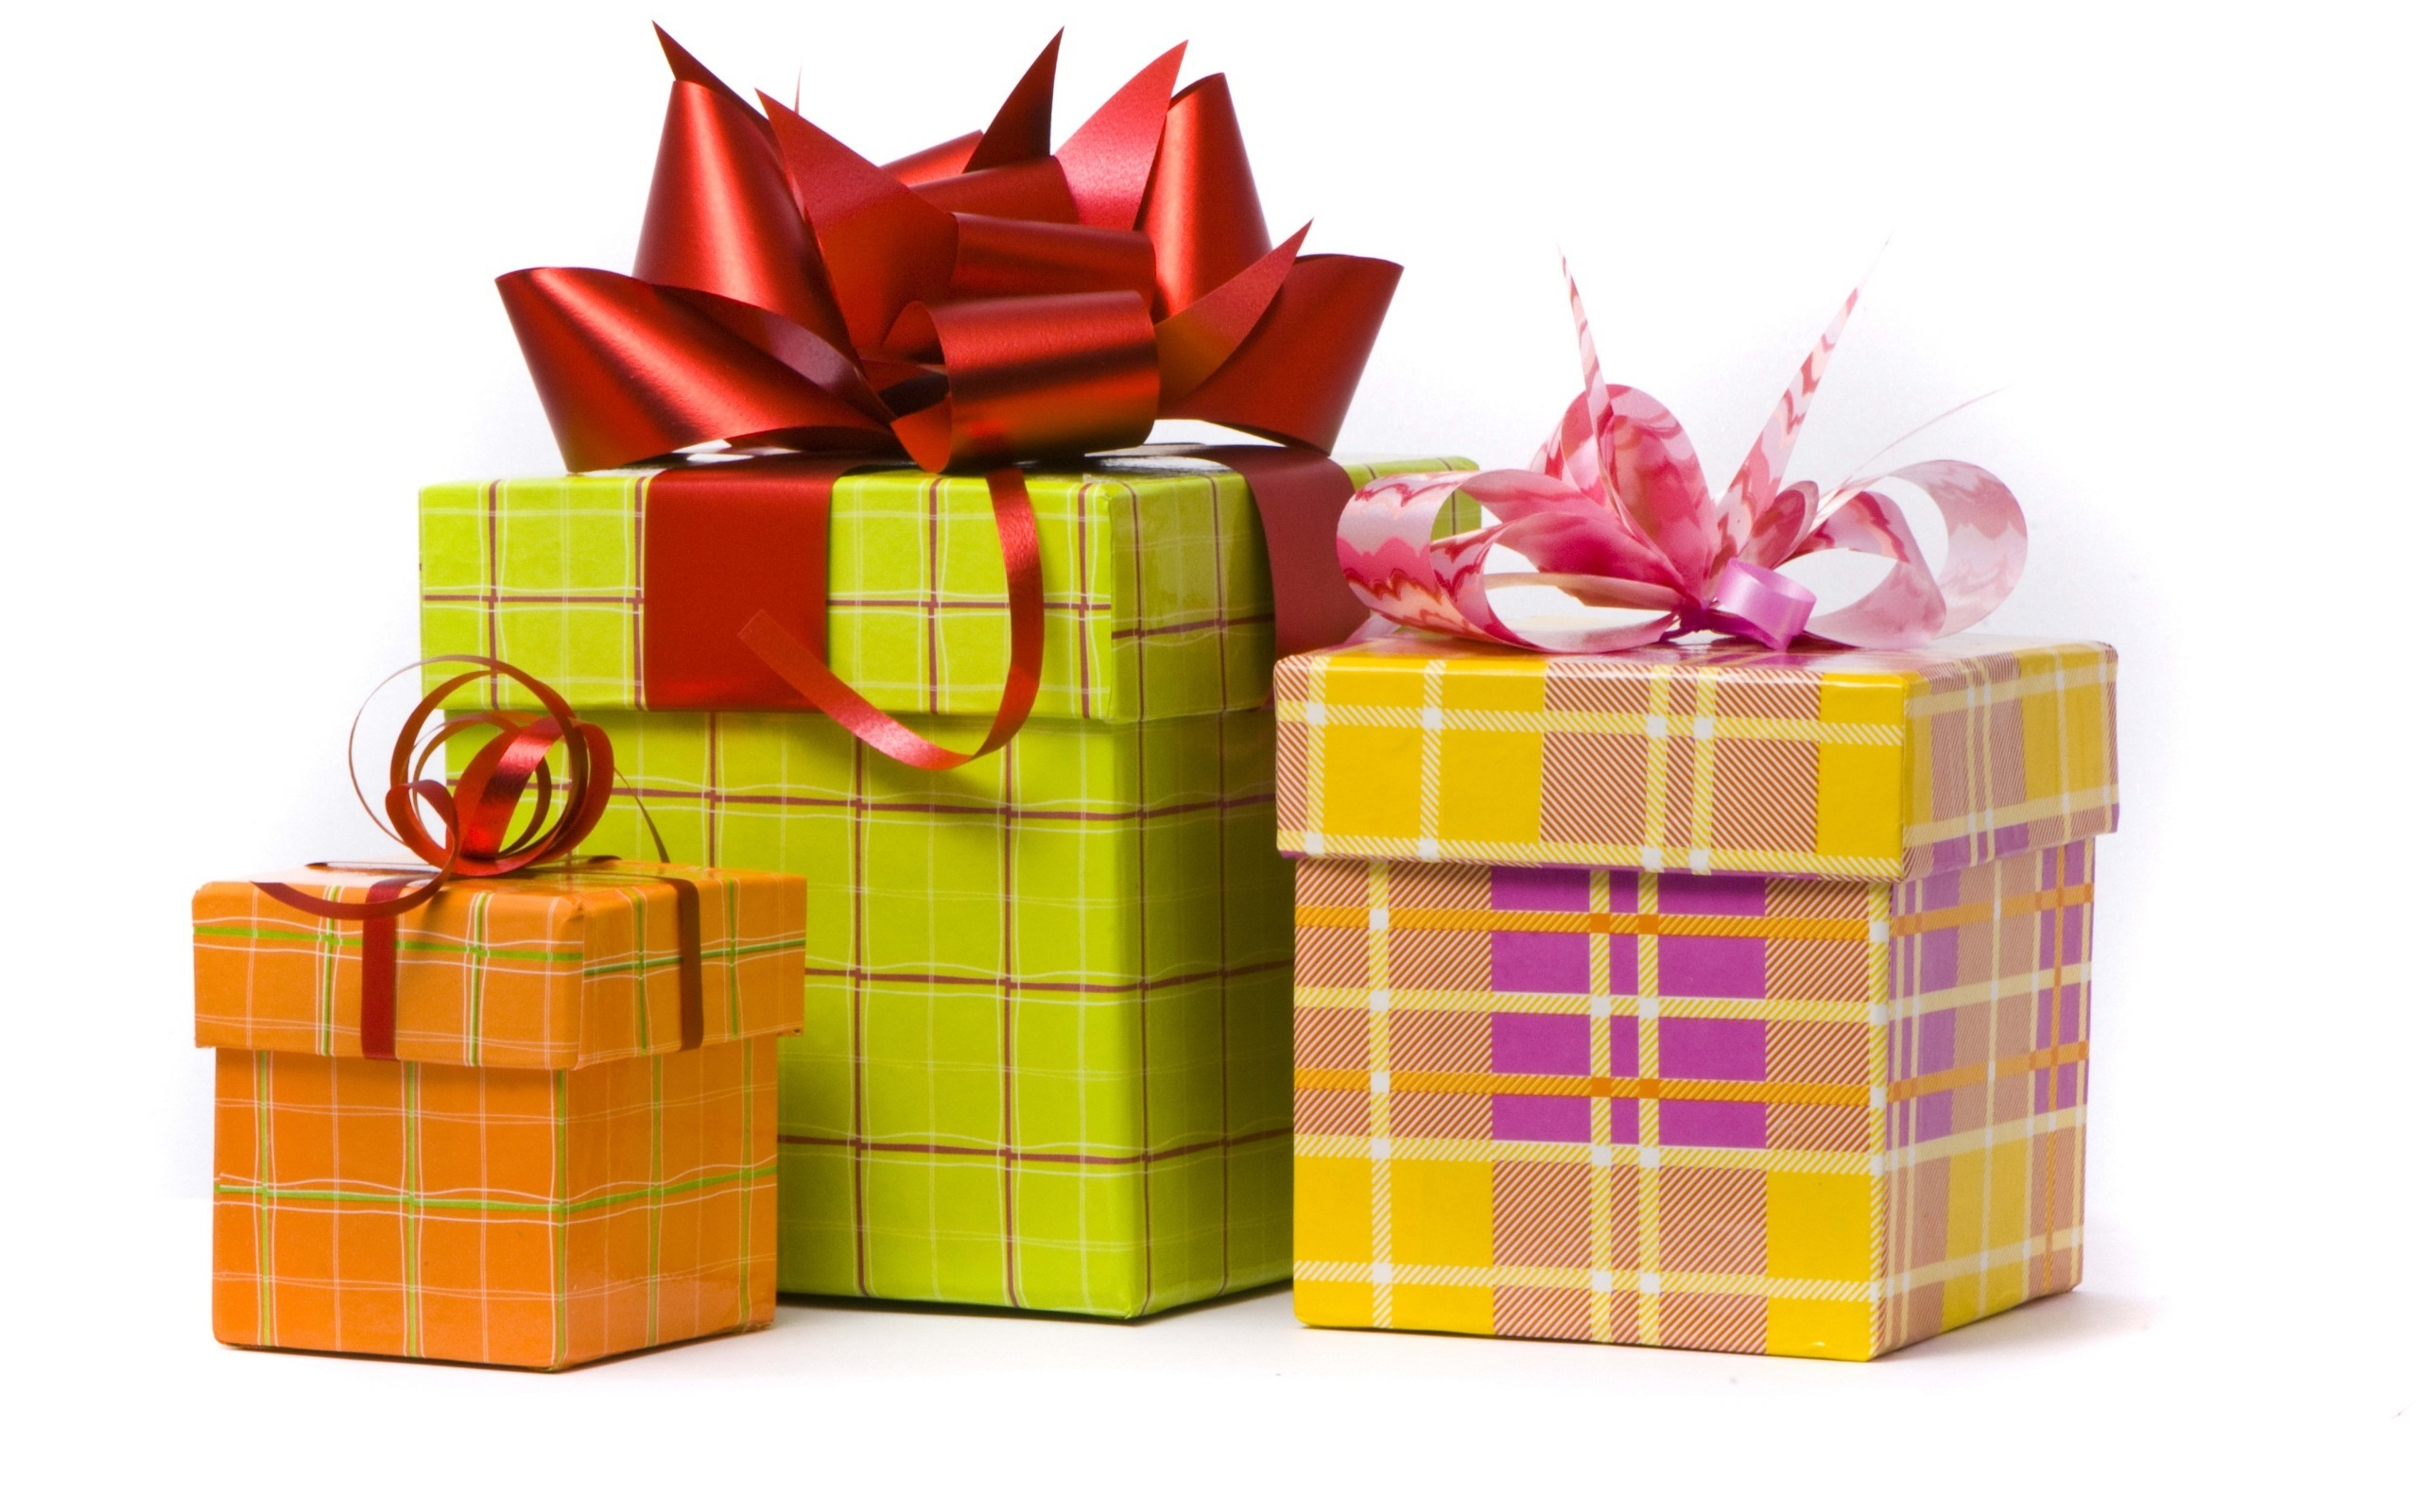 Gifts Photographers Gifts Boxes Wallpaper 2560x1600 26442